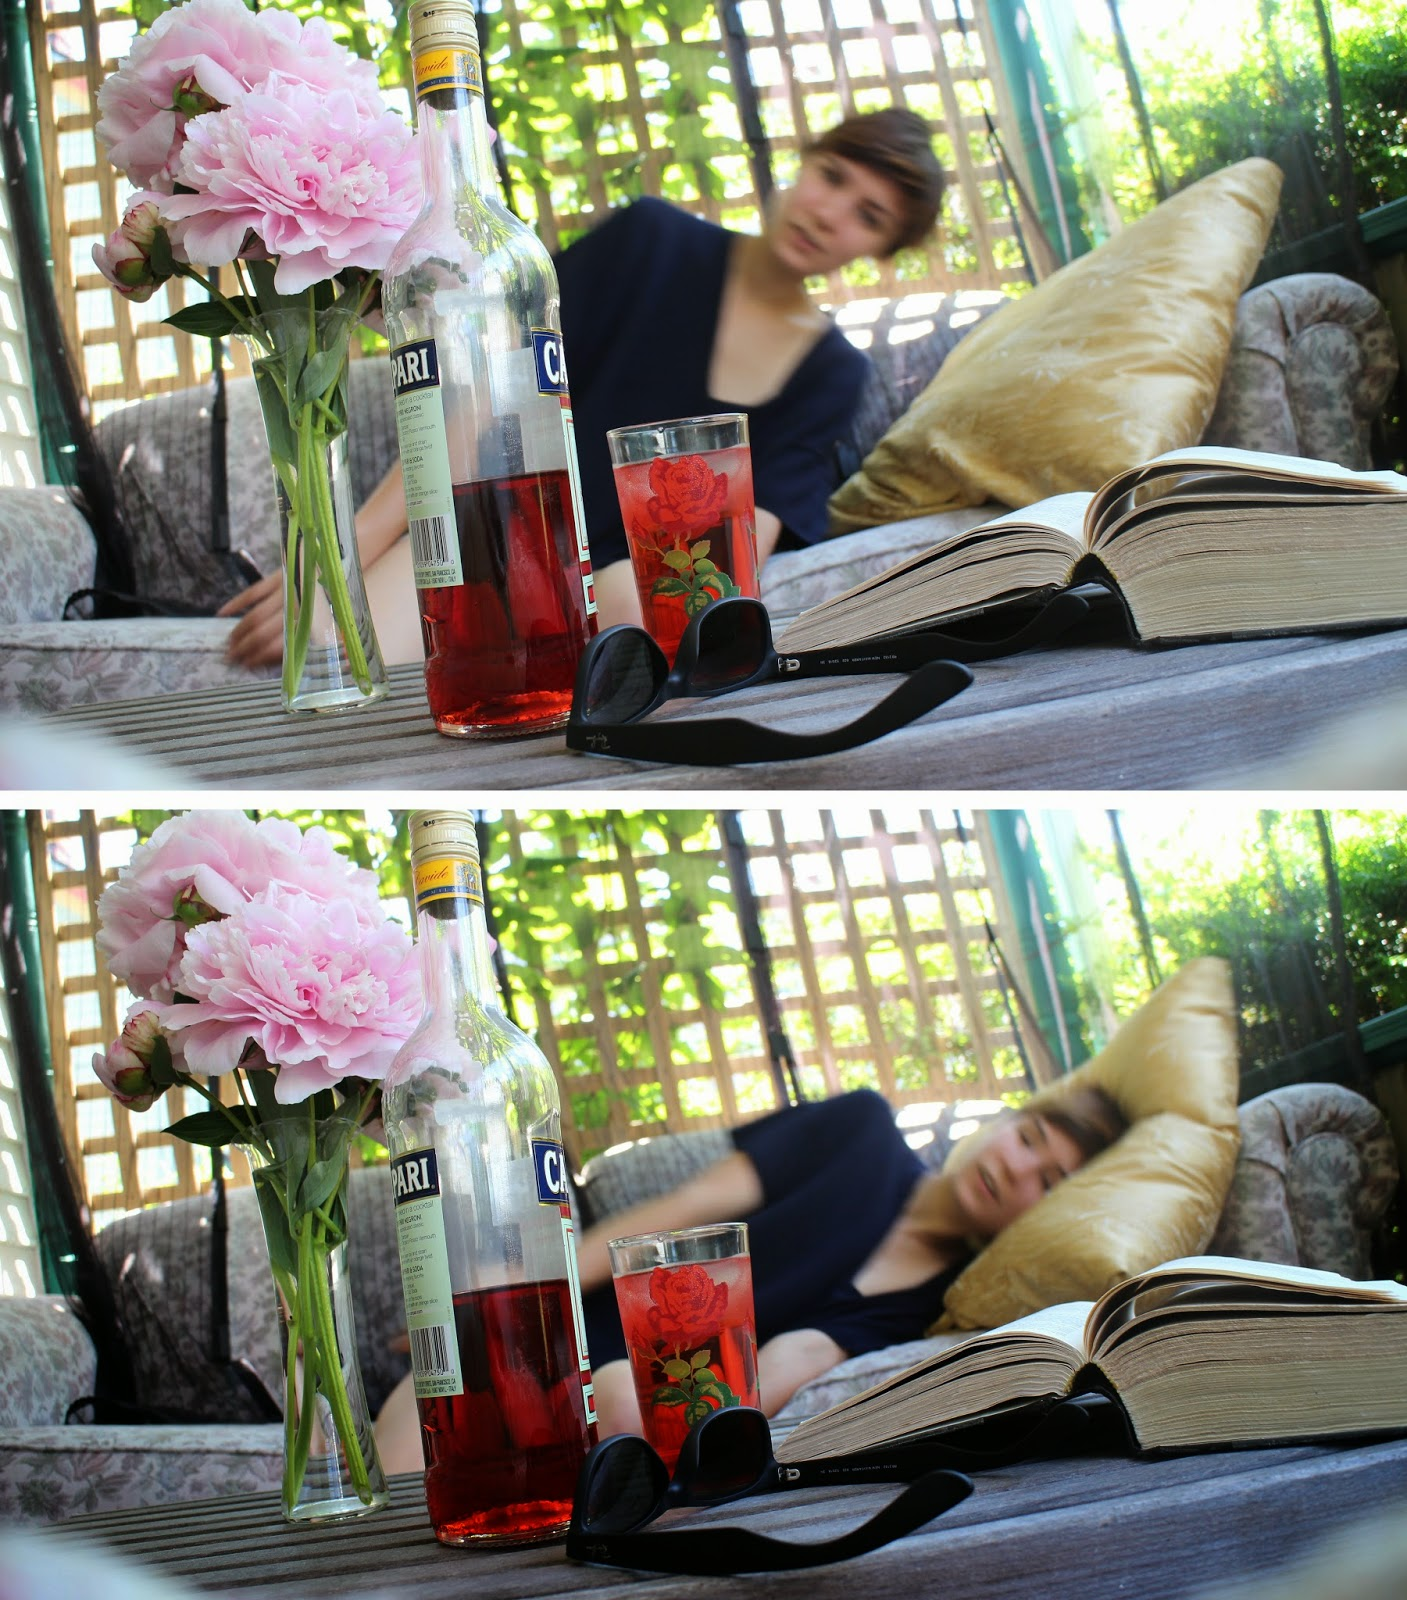 Stuffeddoggie, porch, sunny summer afternoon, peony bouquet, campari, sunglasses, Mists of Avalon, quiet porch day